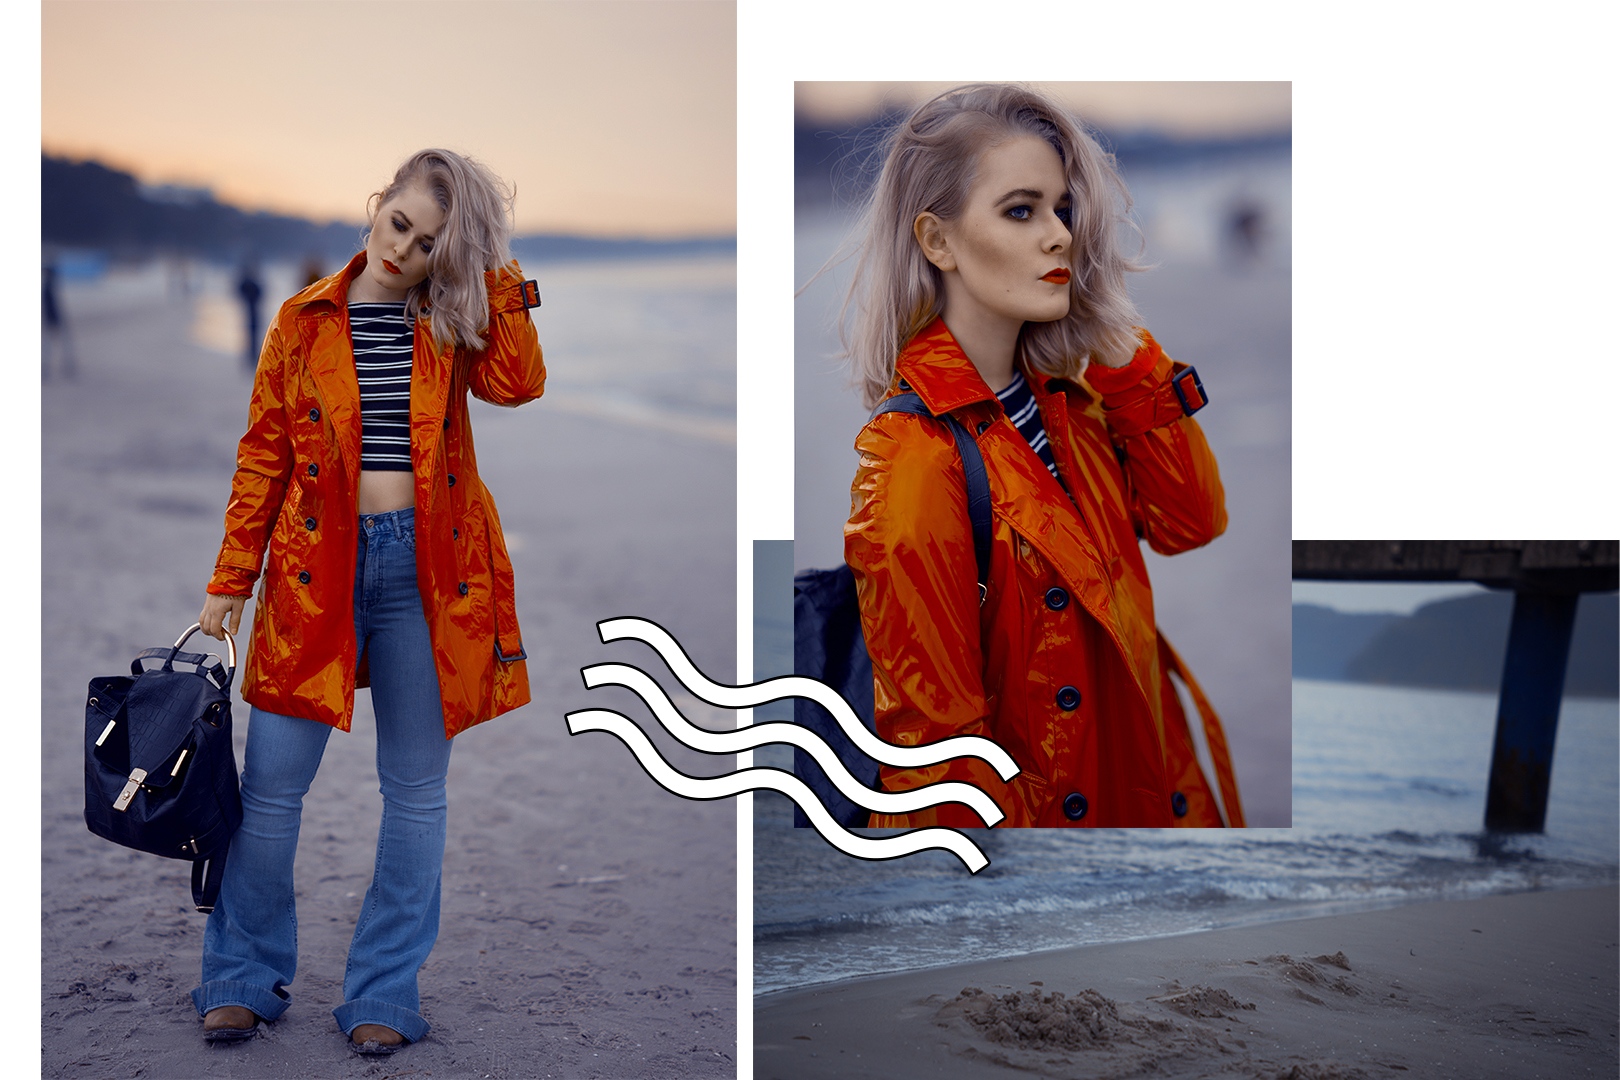 Fashion Blogger Girl Christina Key from Berlin is wearing a high waisted jeans and a red coat